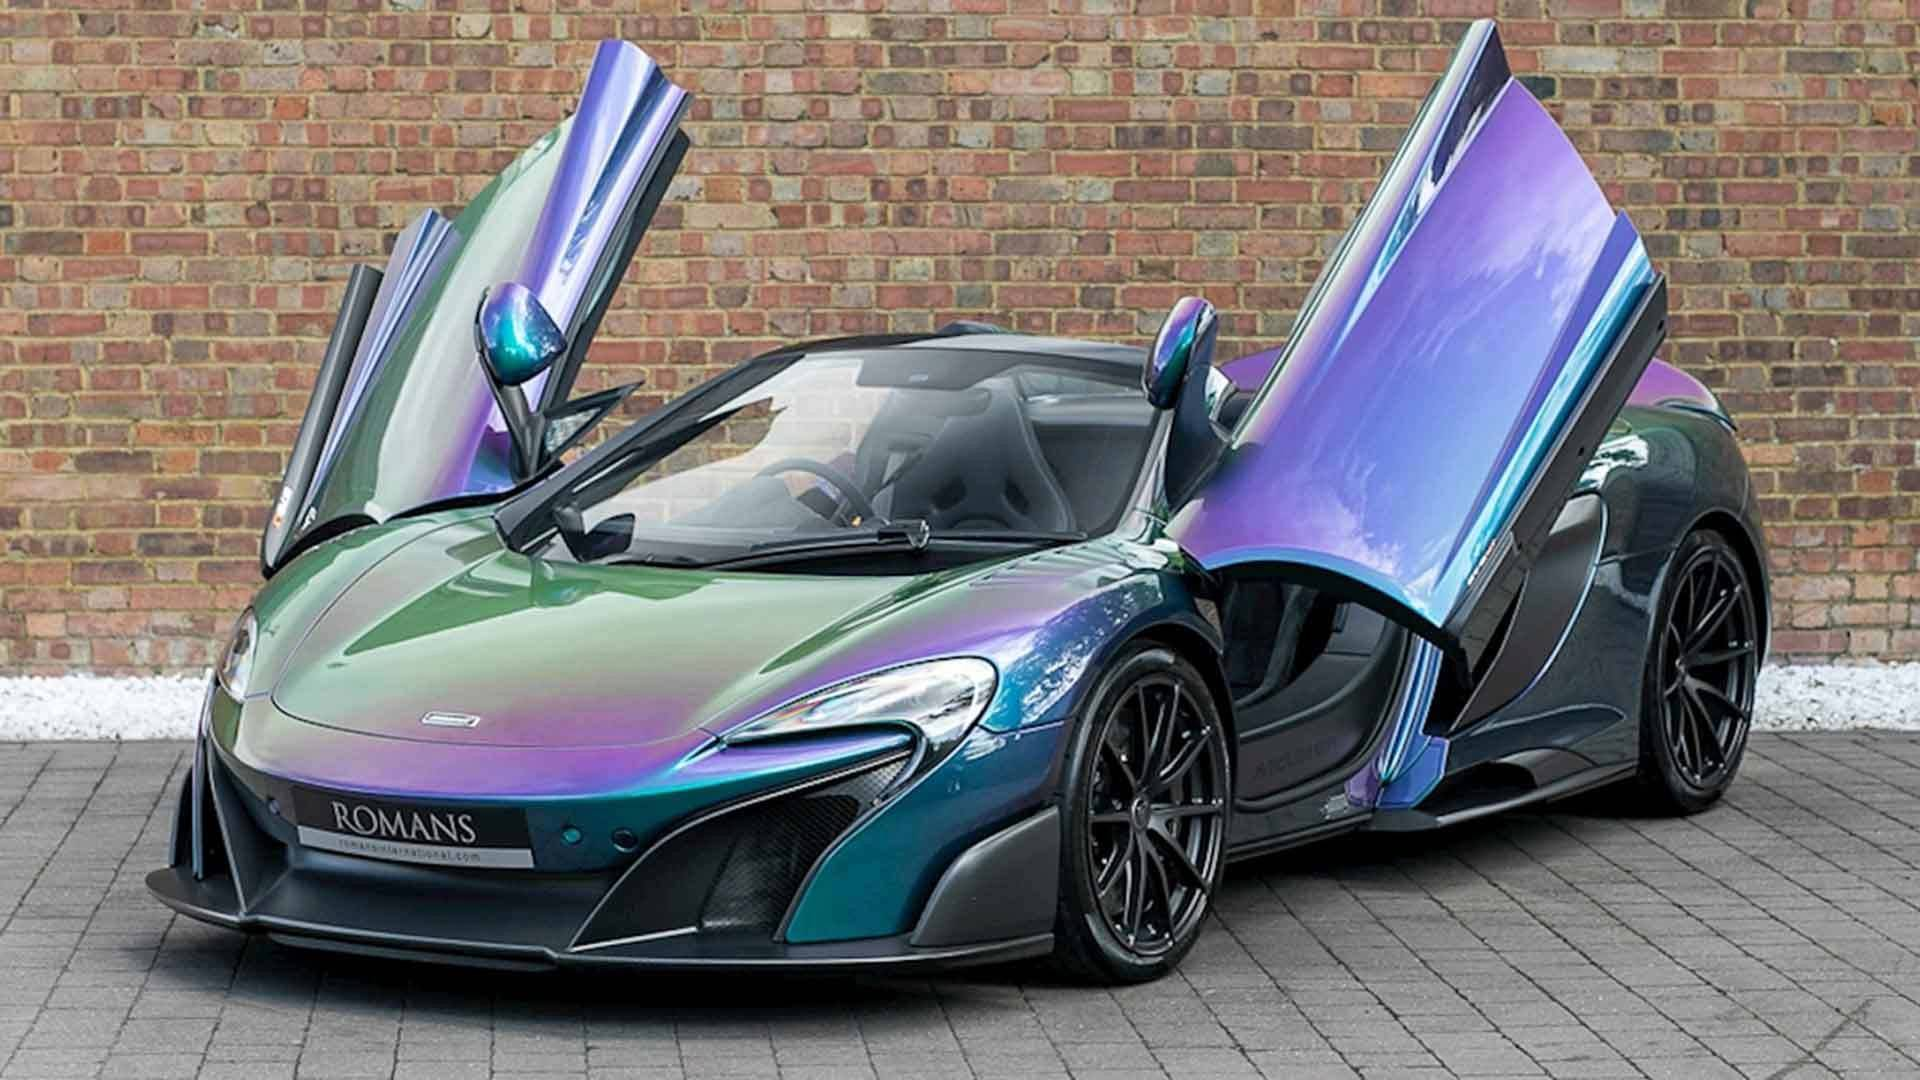 How Much Does It Cost To Paint A Car >> The Paint On This Mclaren 675lt Cost More Than A New Civic